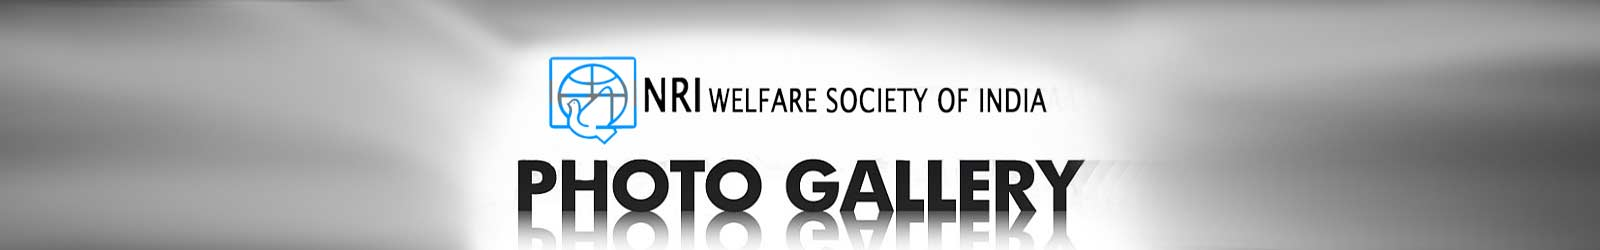 Nri Welfare Society of India Photo Gallery